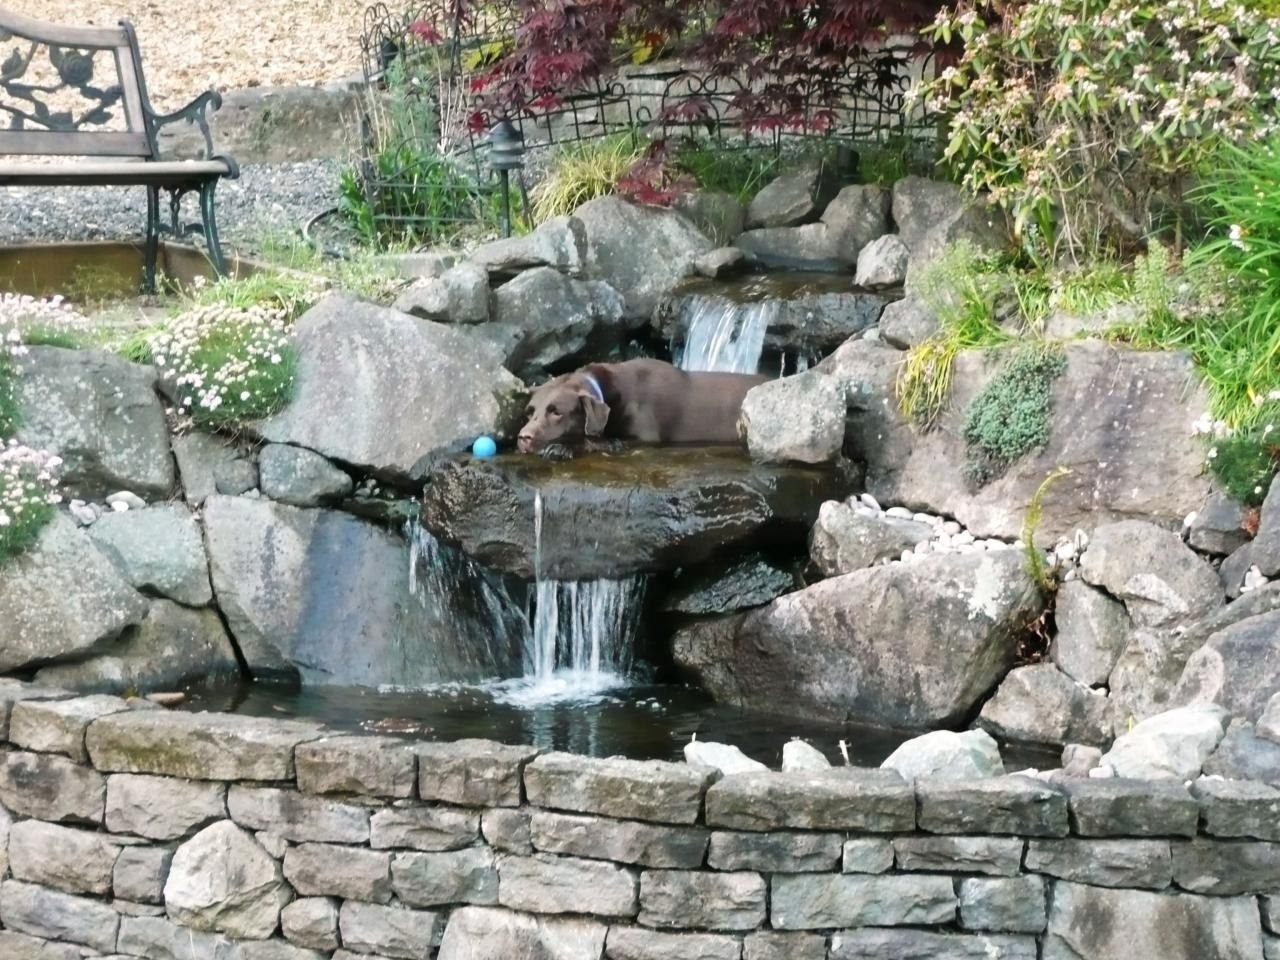 fabulous-small-backyard-pond-ideas-mixed-with-waterfall-and-rock-adge-arrangement-also-lush-vegetation-plus-iron-chair_01.